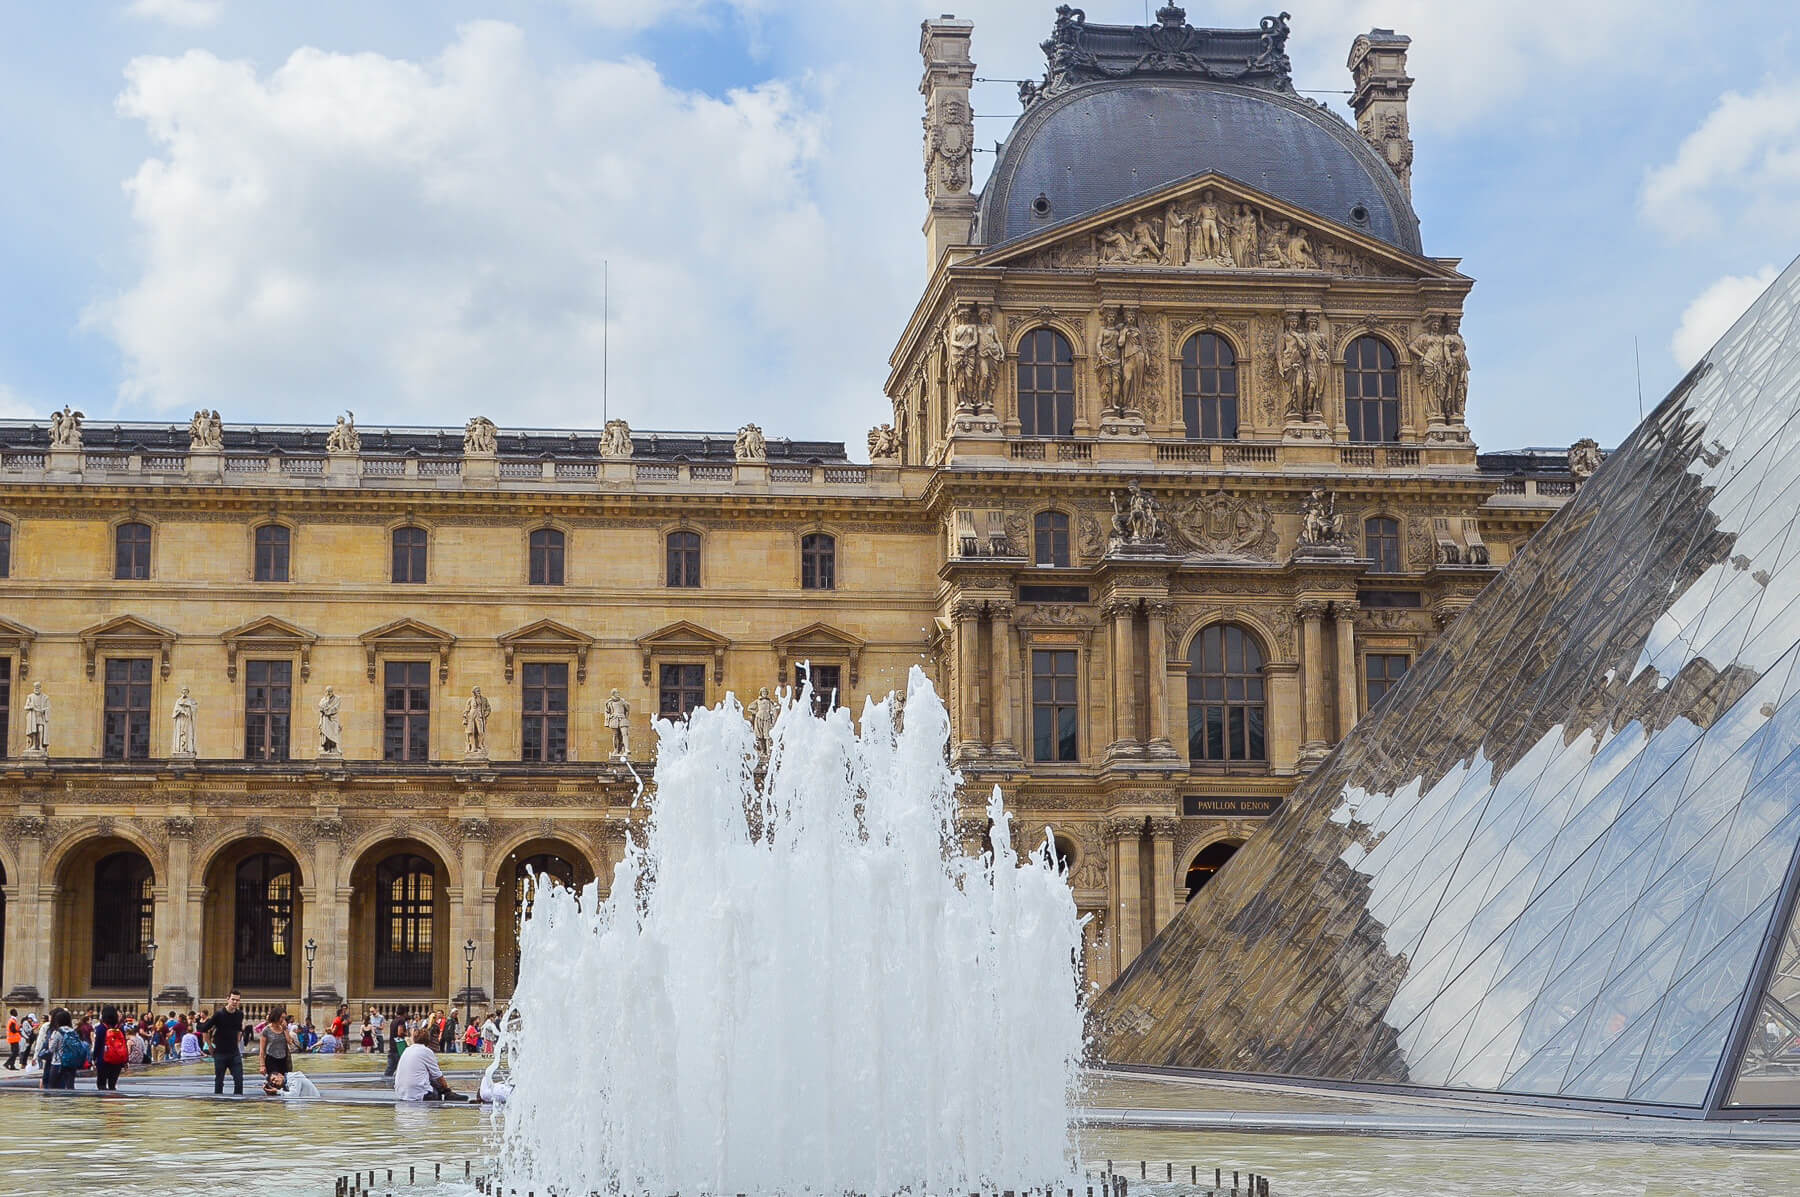 Water fountain display infront of glass pyramid (louvre) and old building